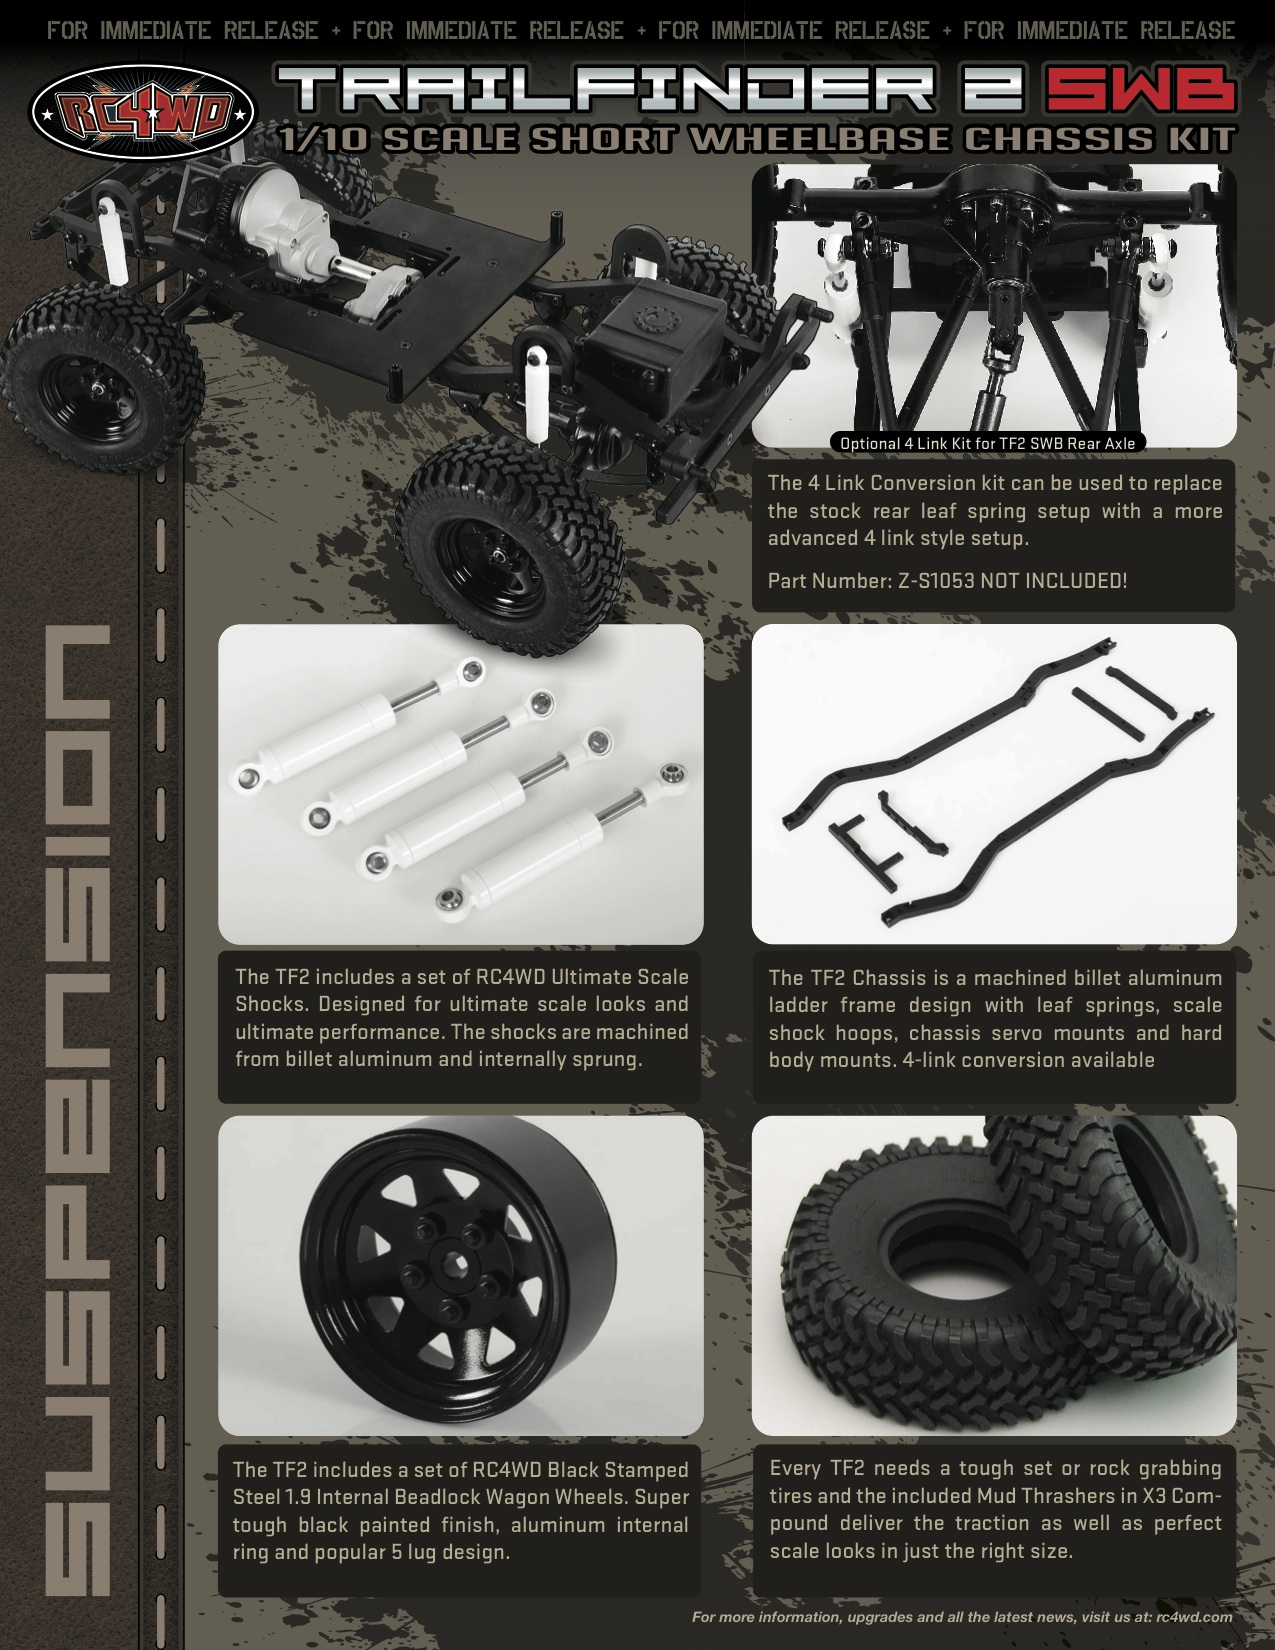 https://www.beadlok.com/product/images/ASD/Z-K0045-9Suspension-print.jpg